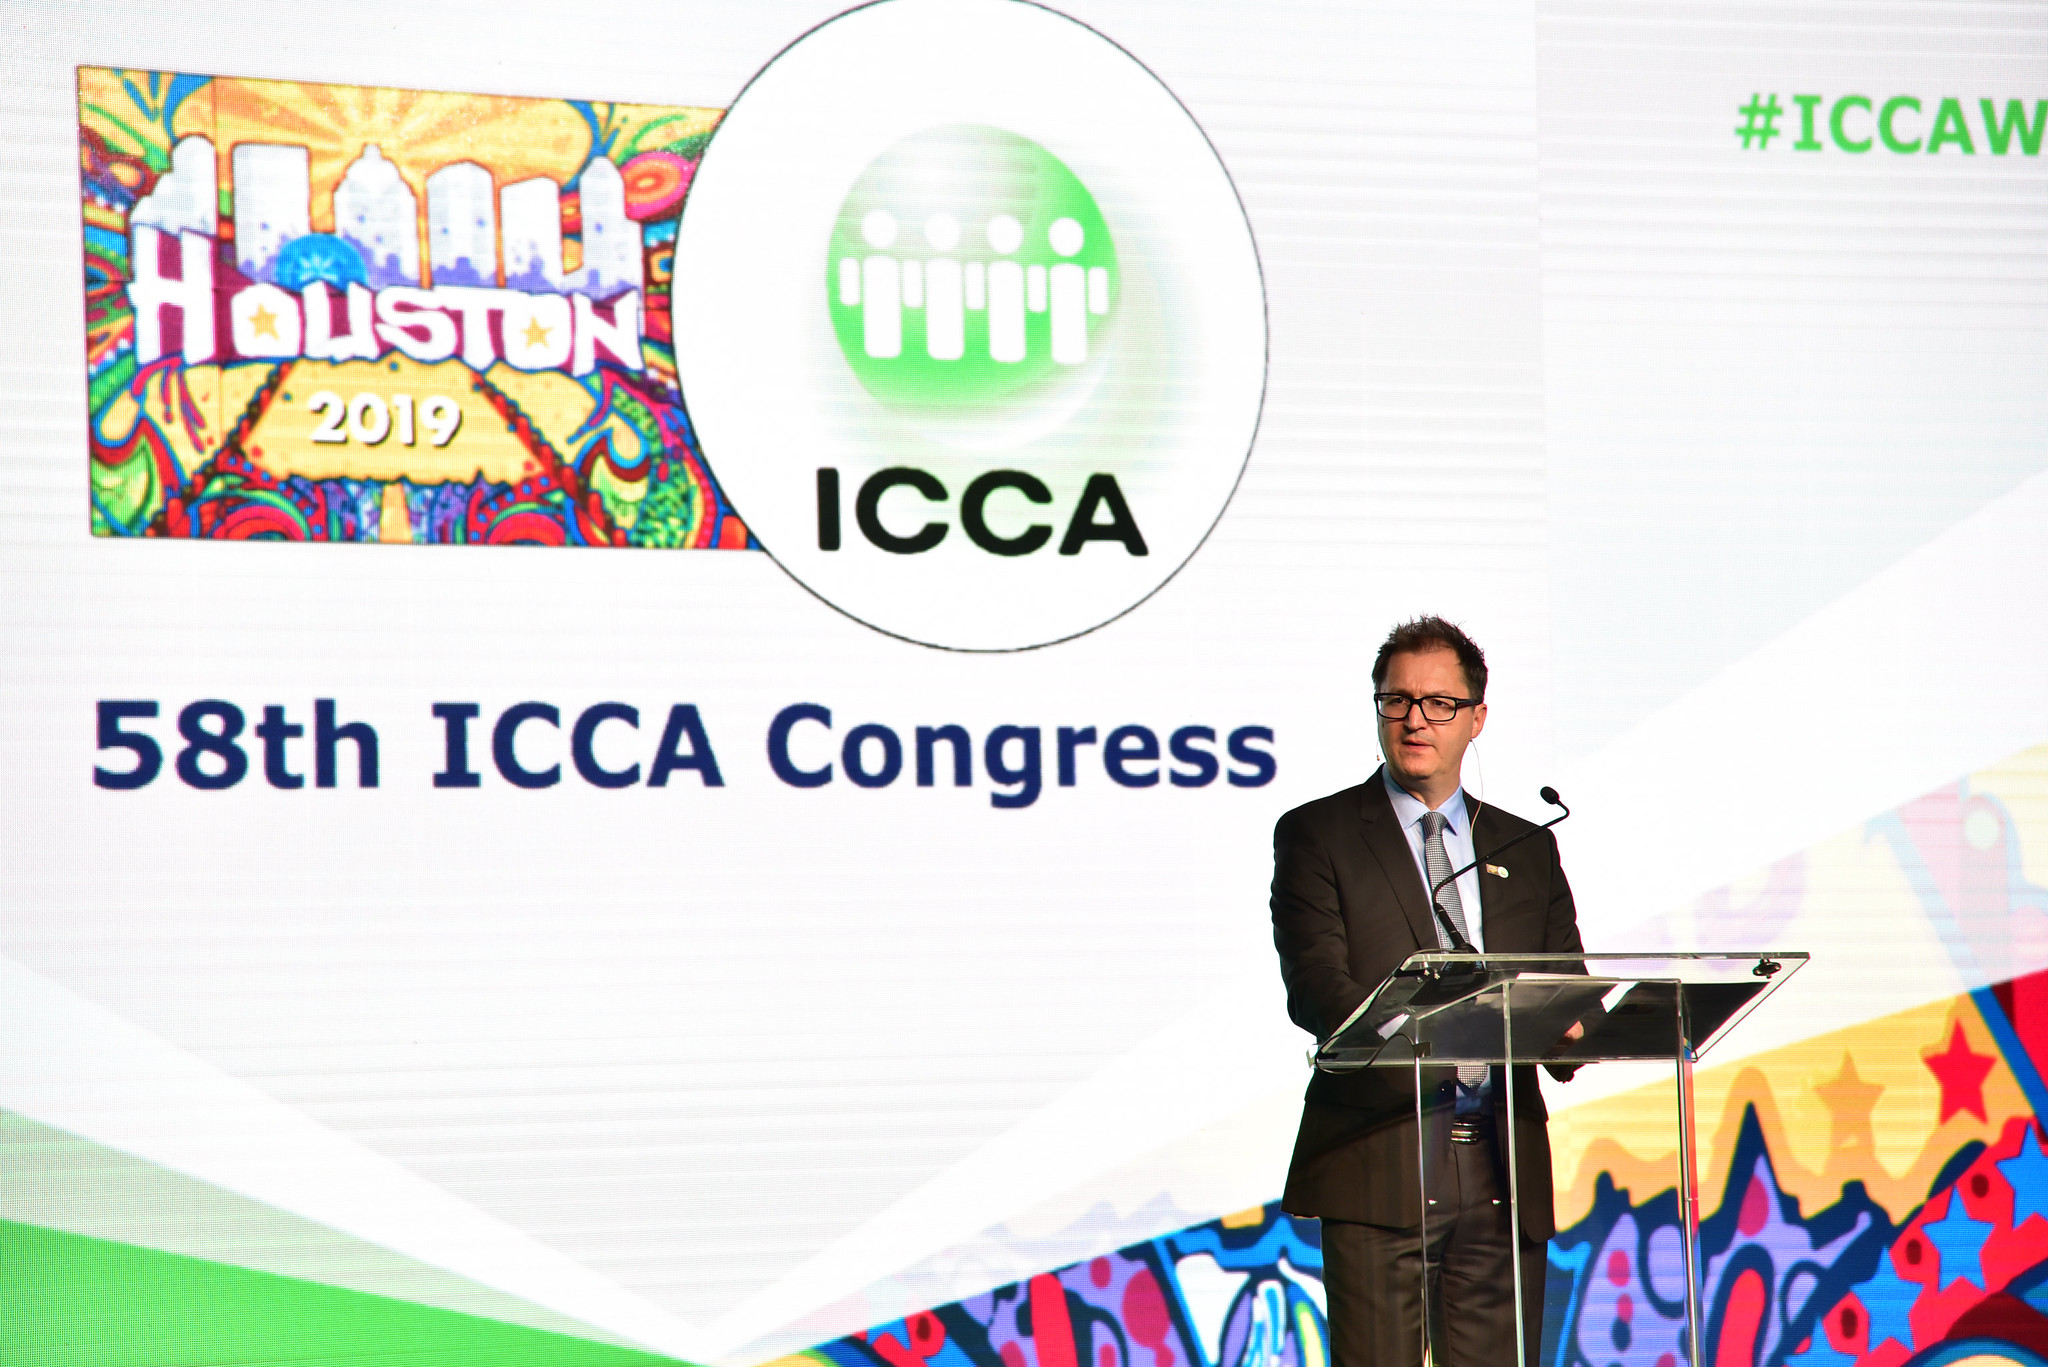 ICCA President James Rees gives his final quarterly presidential message of 2019.